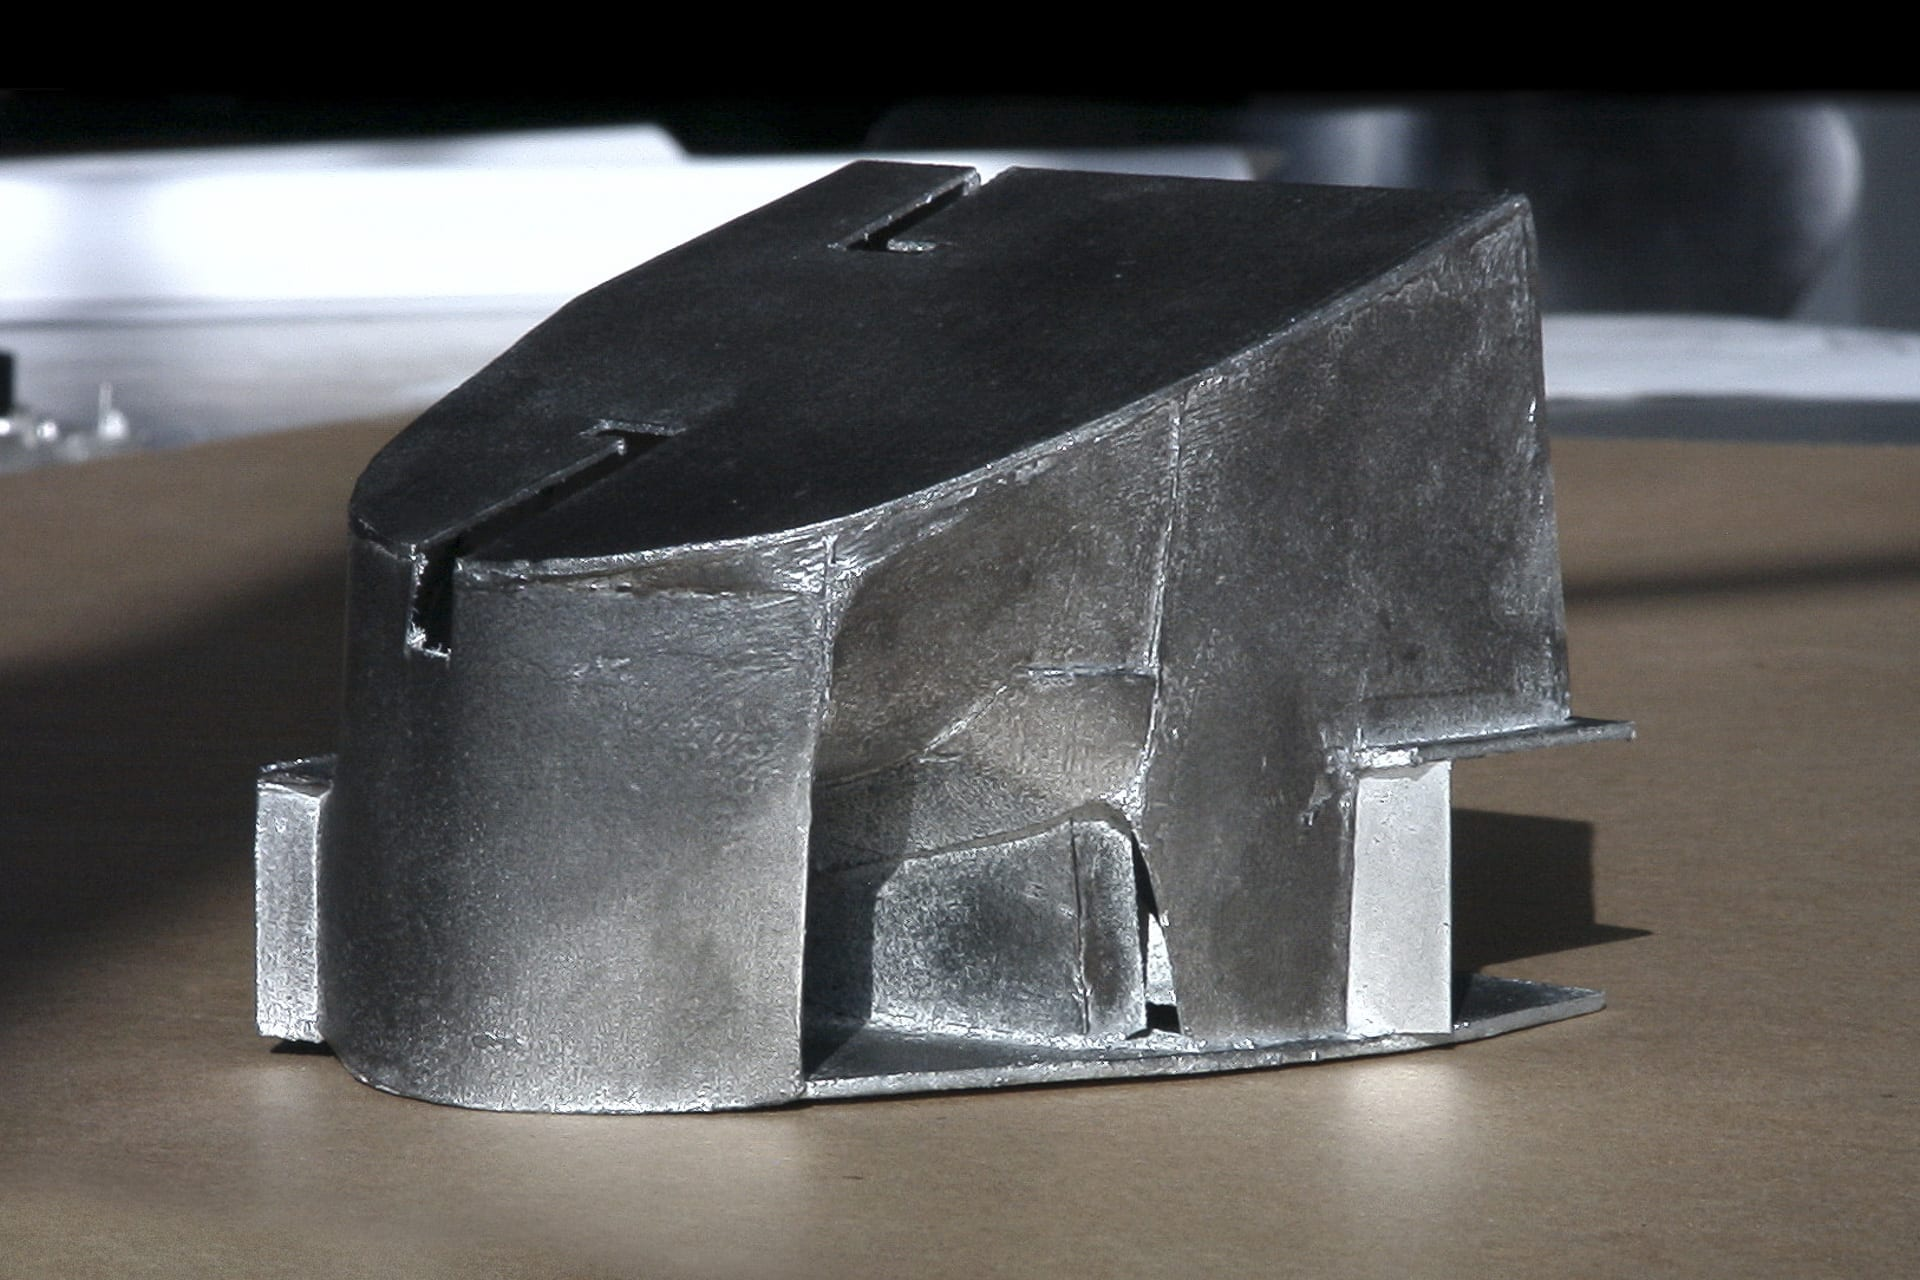 Physical model by Steven Holl Architects for the Turbulence House.